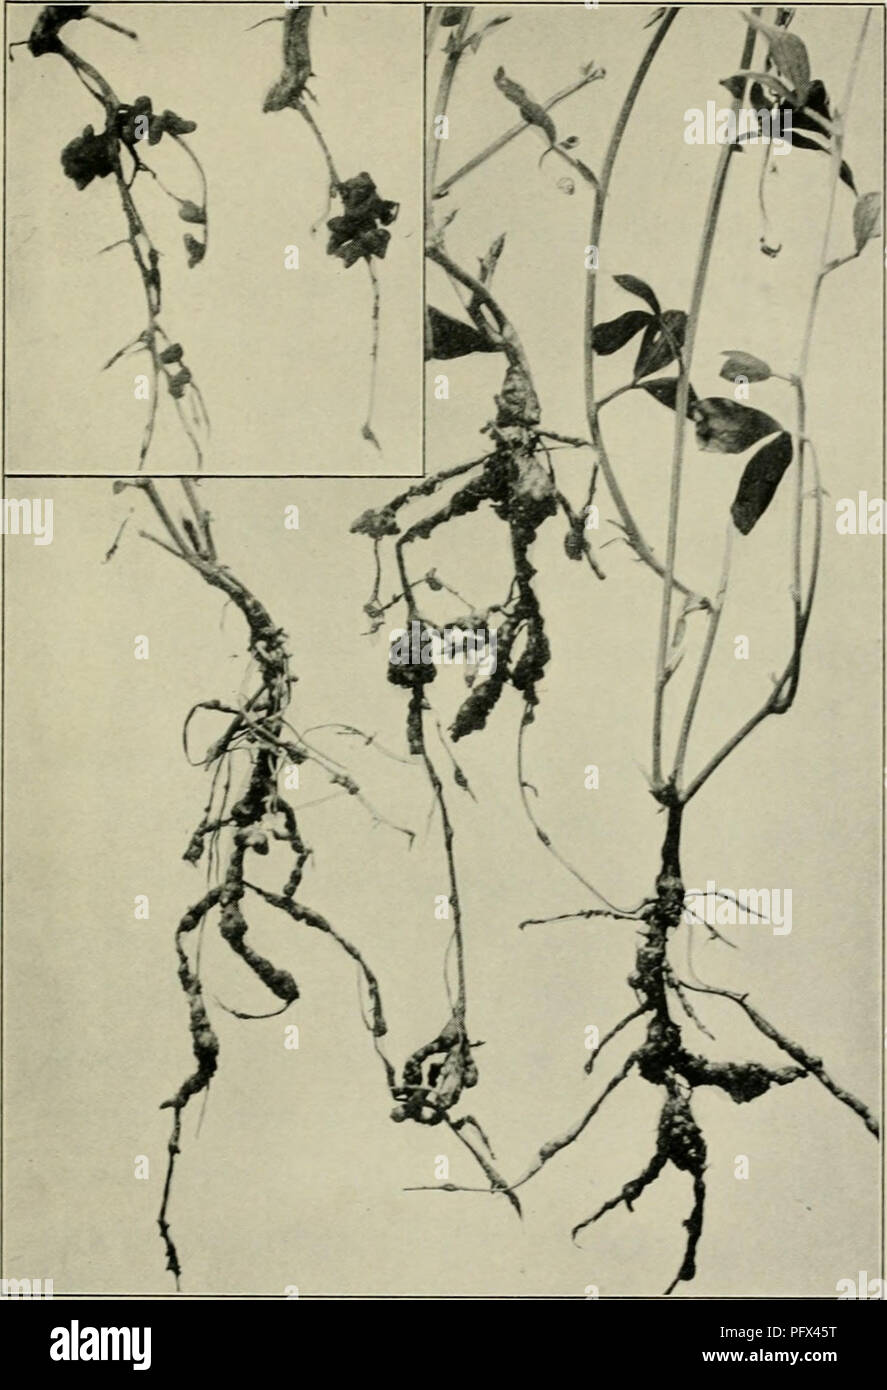 medium resolution of  the culture and diseases of the sweet pea figs i8 19 root knot of sweet peas a root trouble which may be mistaken for the true legume root nodules